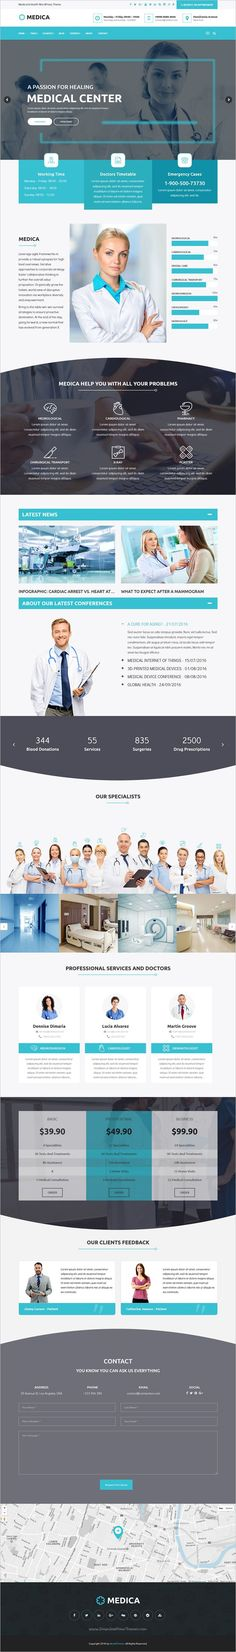 MedicaWP is a stilish and modern design responsive #WordPress theme for #medical, hospital and healthcare #websites with 11+ unique homepage layouts download now➩ https://themeforest.net/item/medicawp-a-stilish-medical-hospital-health-wordpress-theme/18977250?ref=Datasata